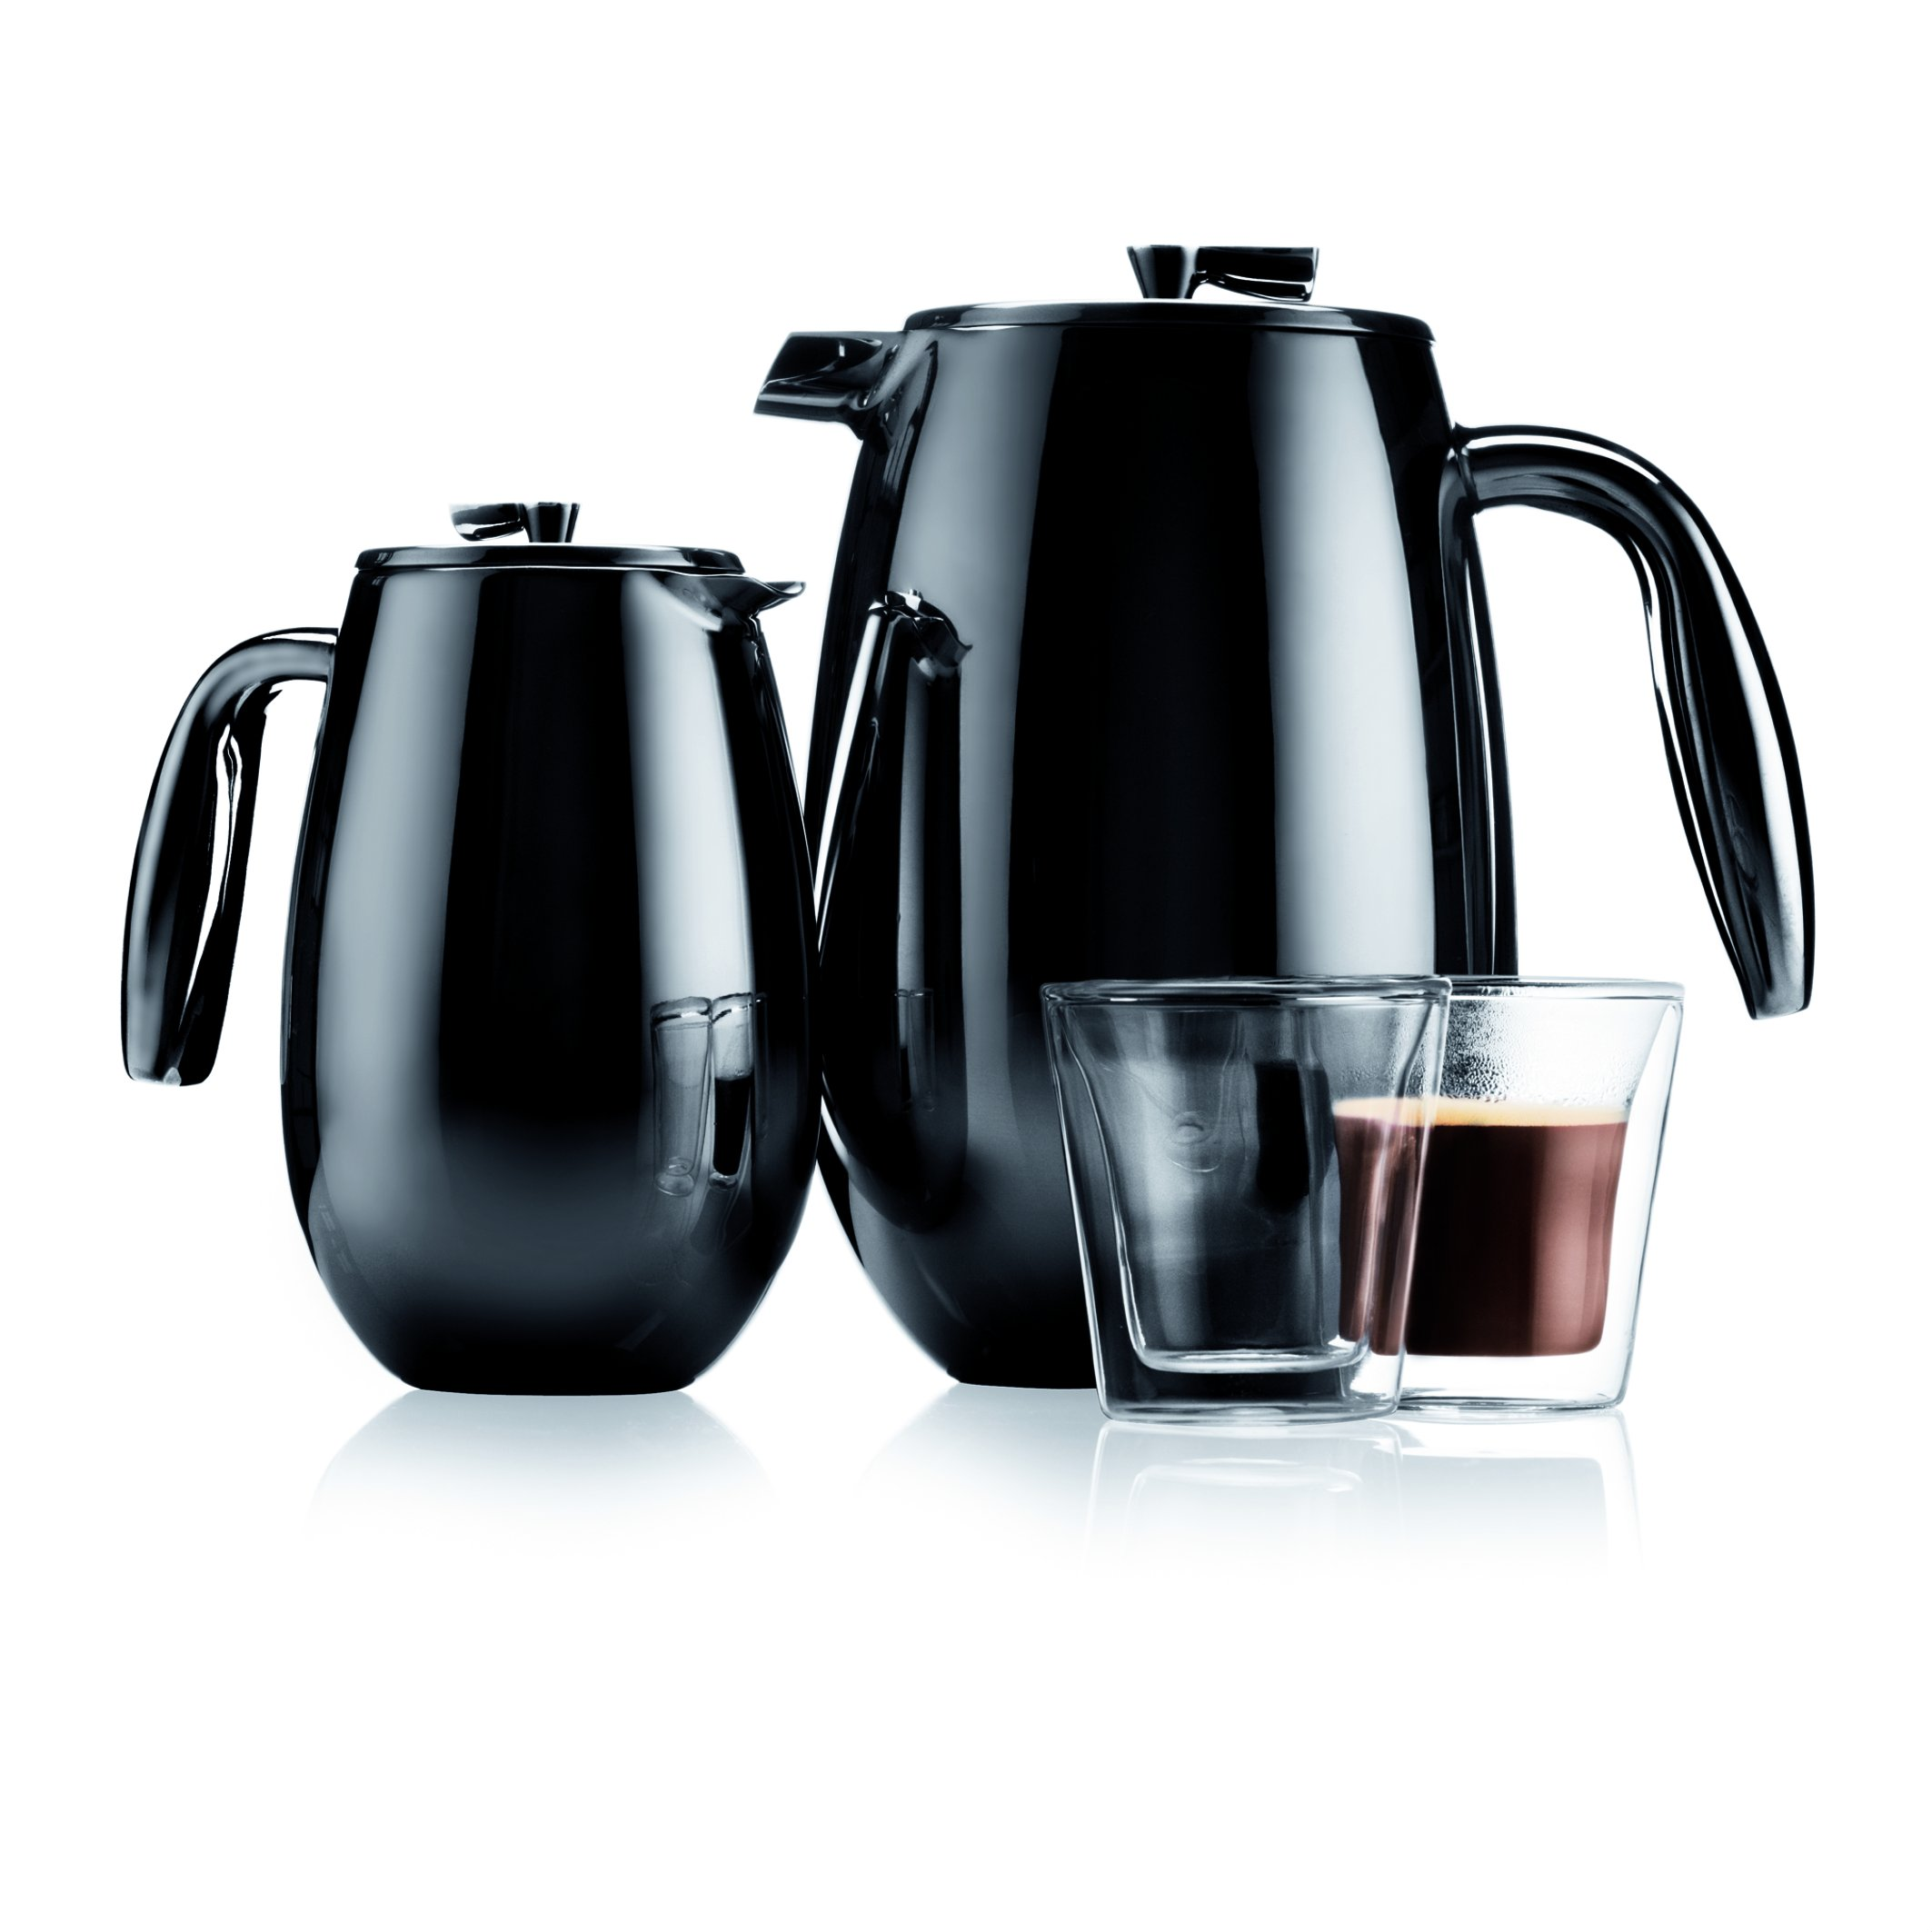 12 Cup Coffee Maker Equals How Many Ounces : Galleon - Bodum COLUMBIA Coffee Maker, Thermal French Press Coffee Maker, Stainless Steel, 51 ...